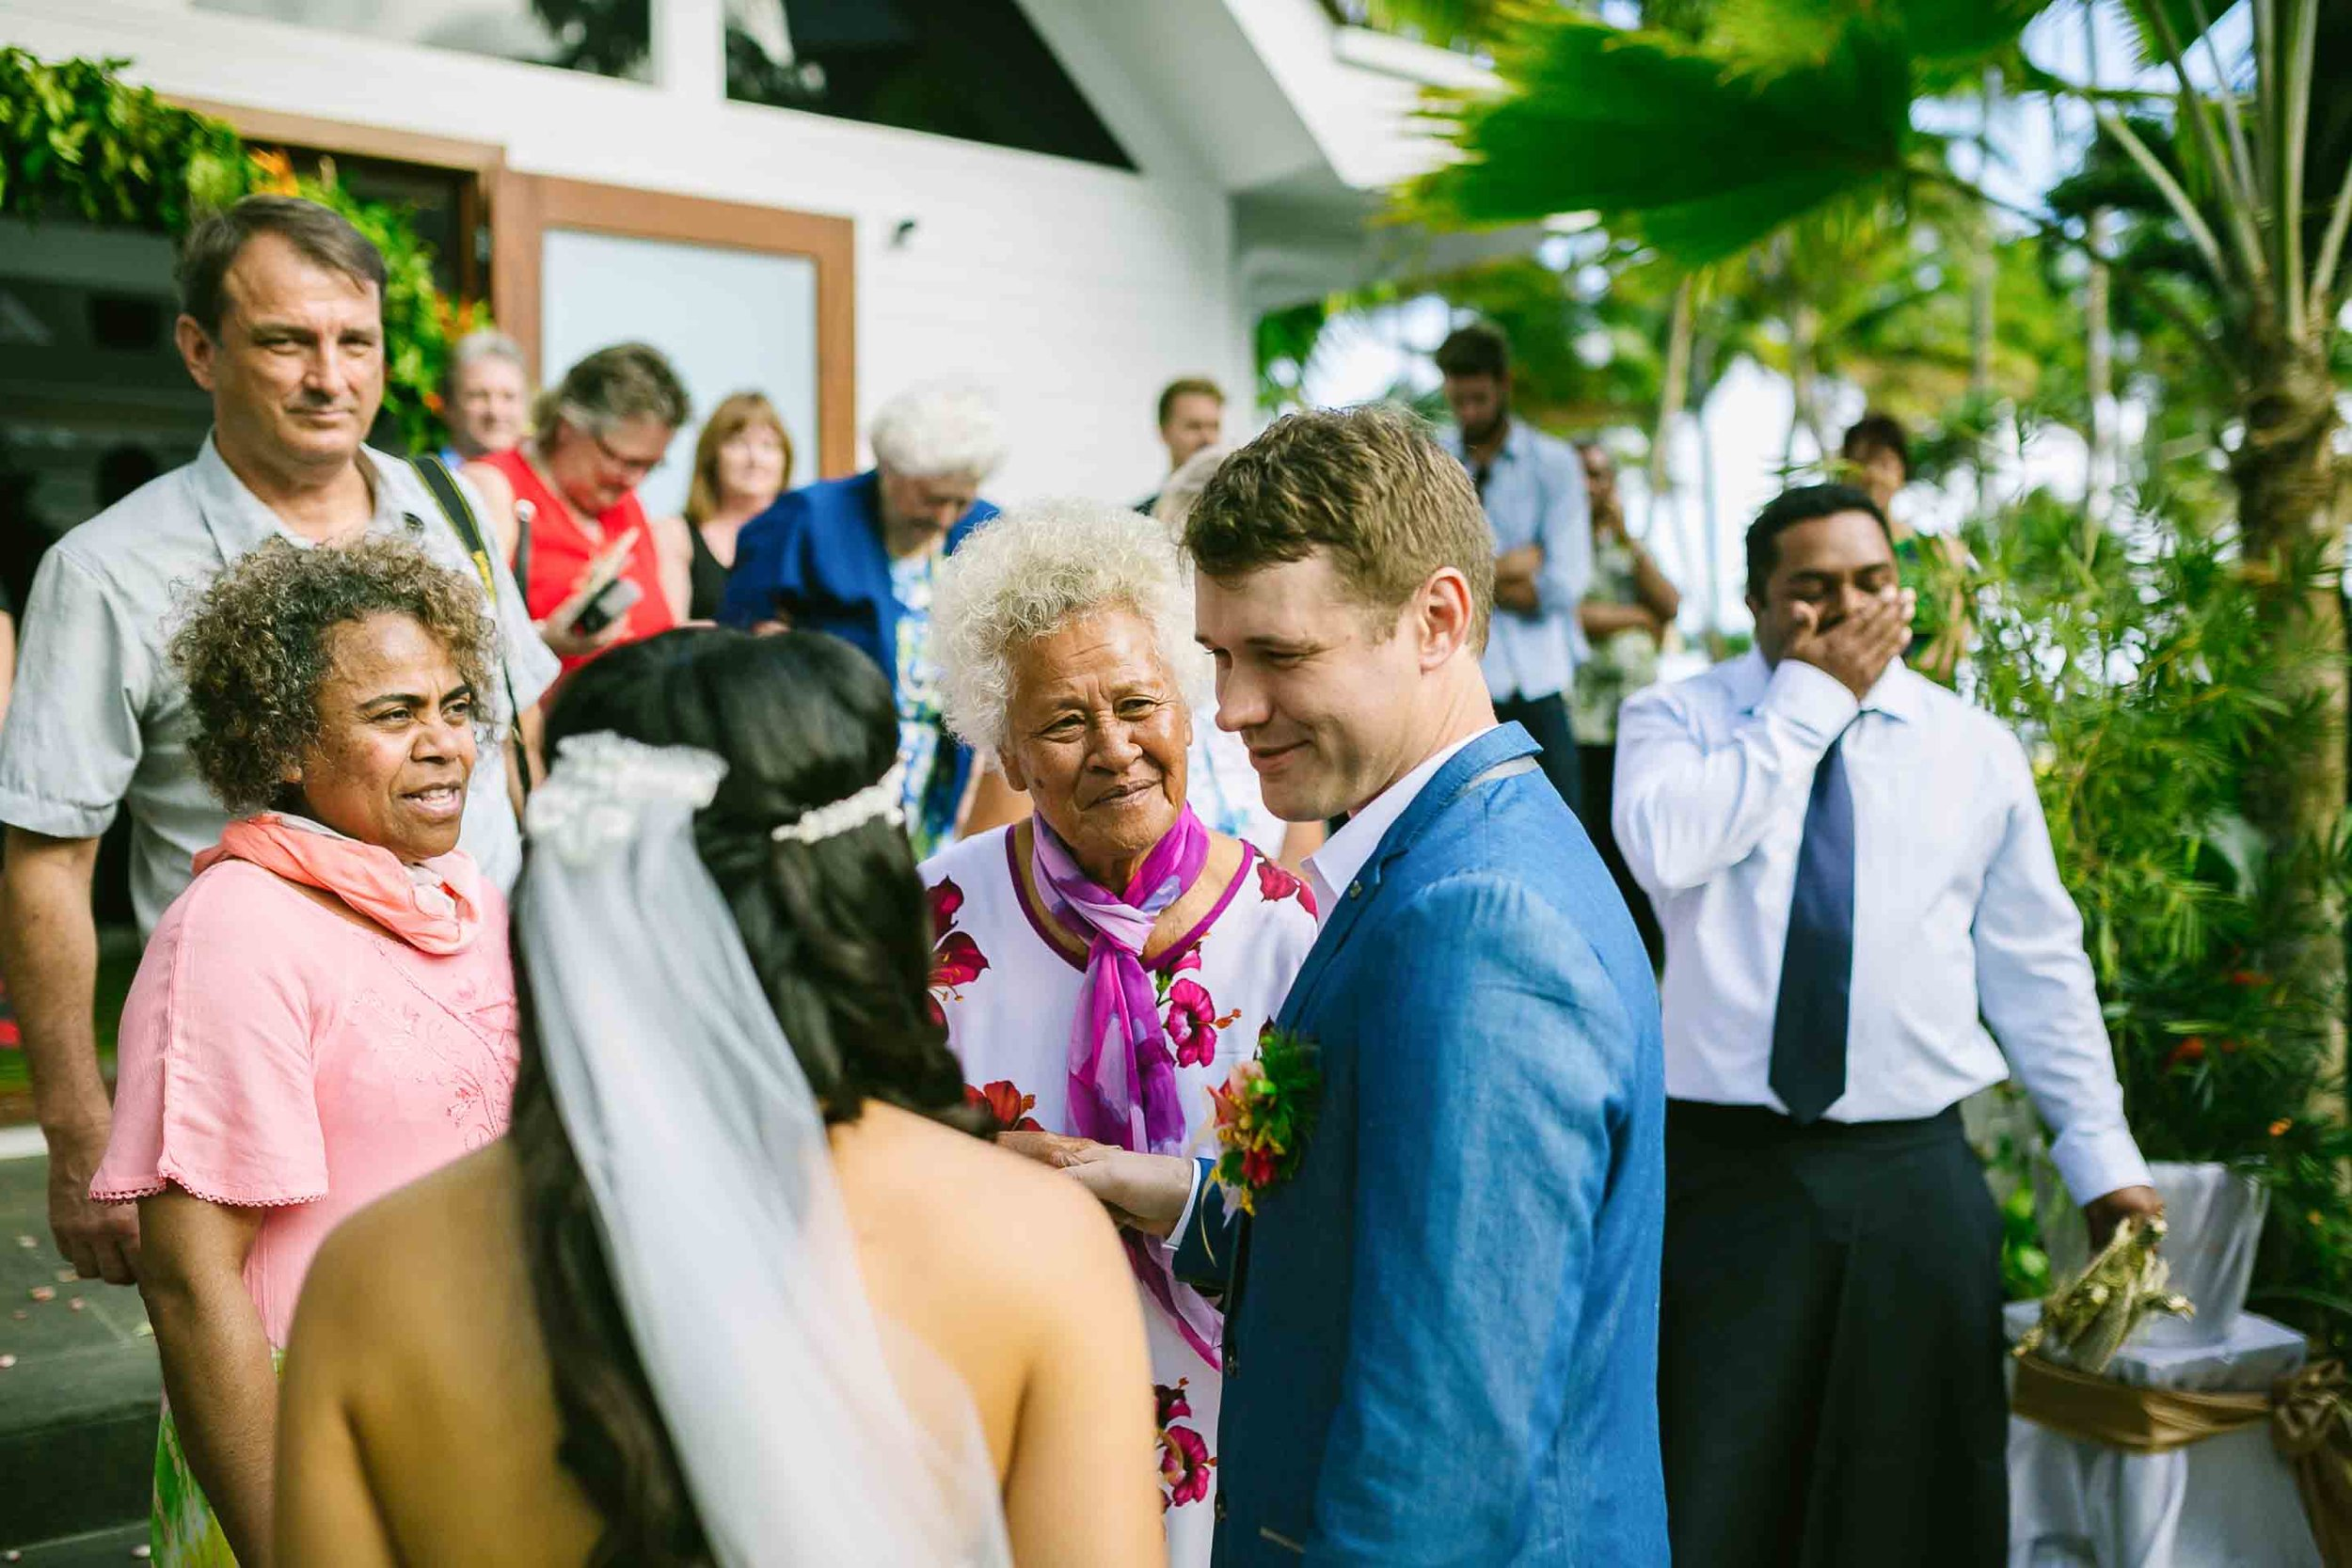 guests congratulating the couple on their marriage